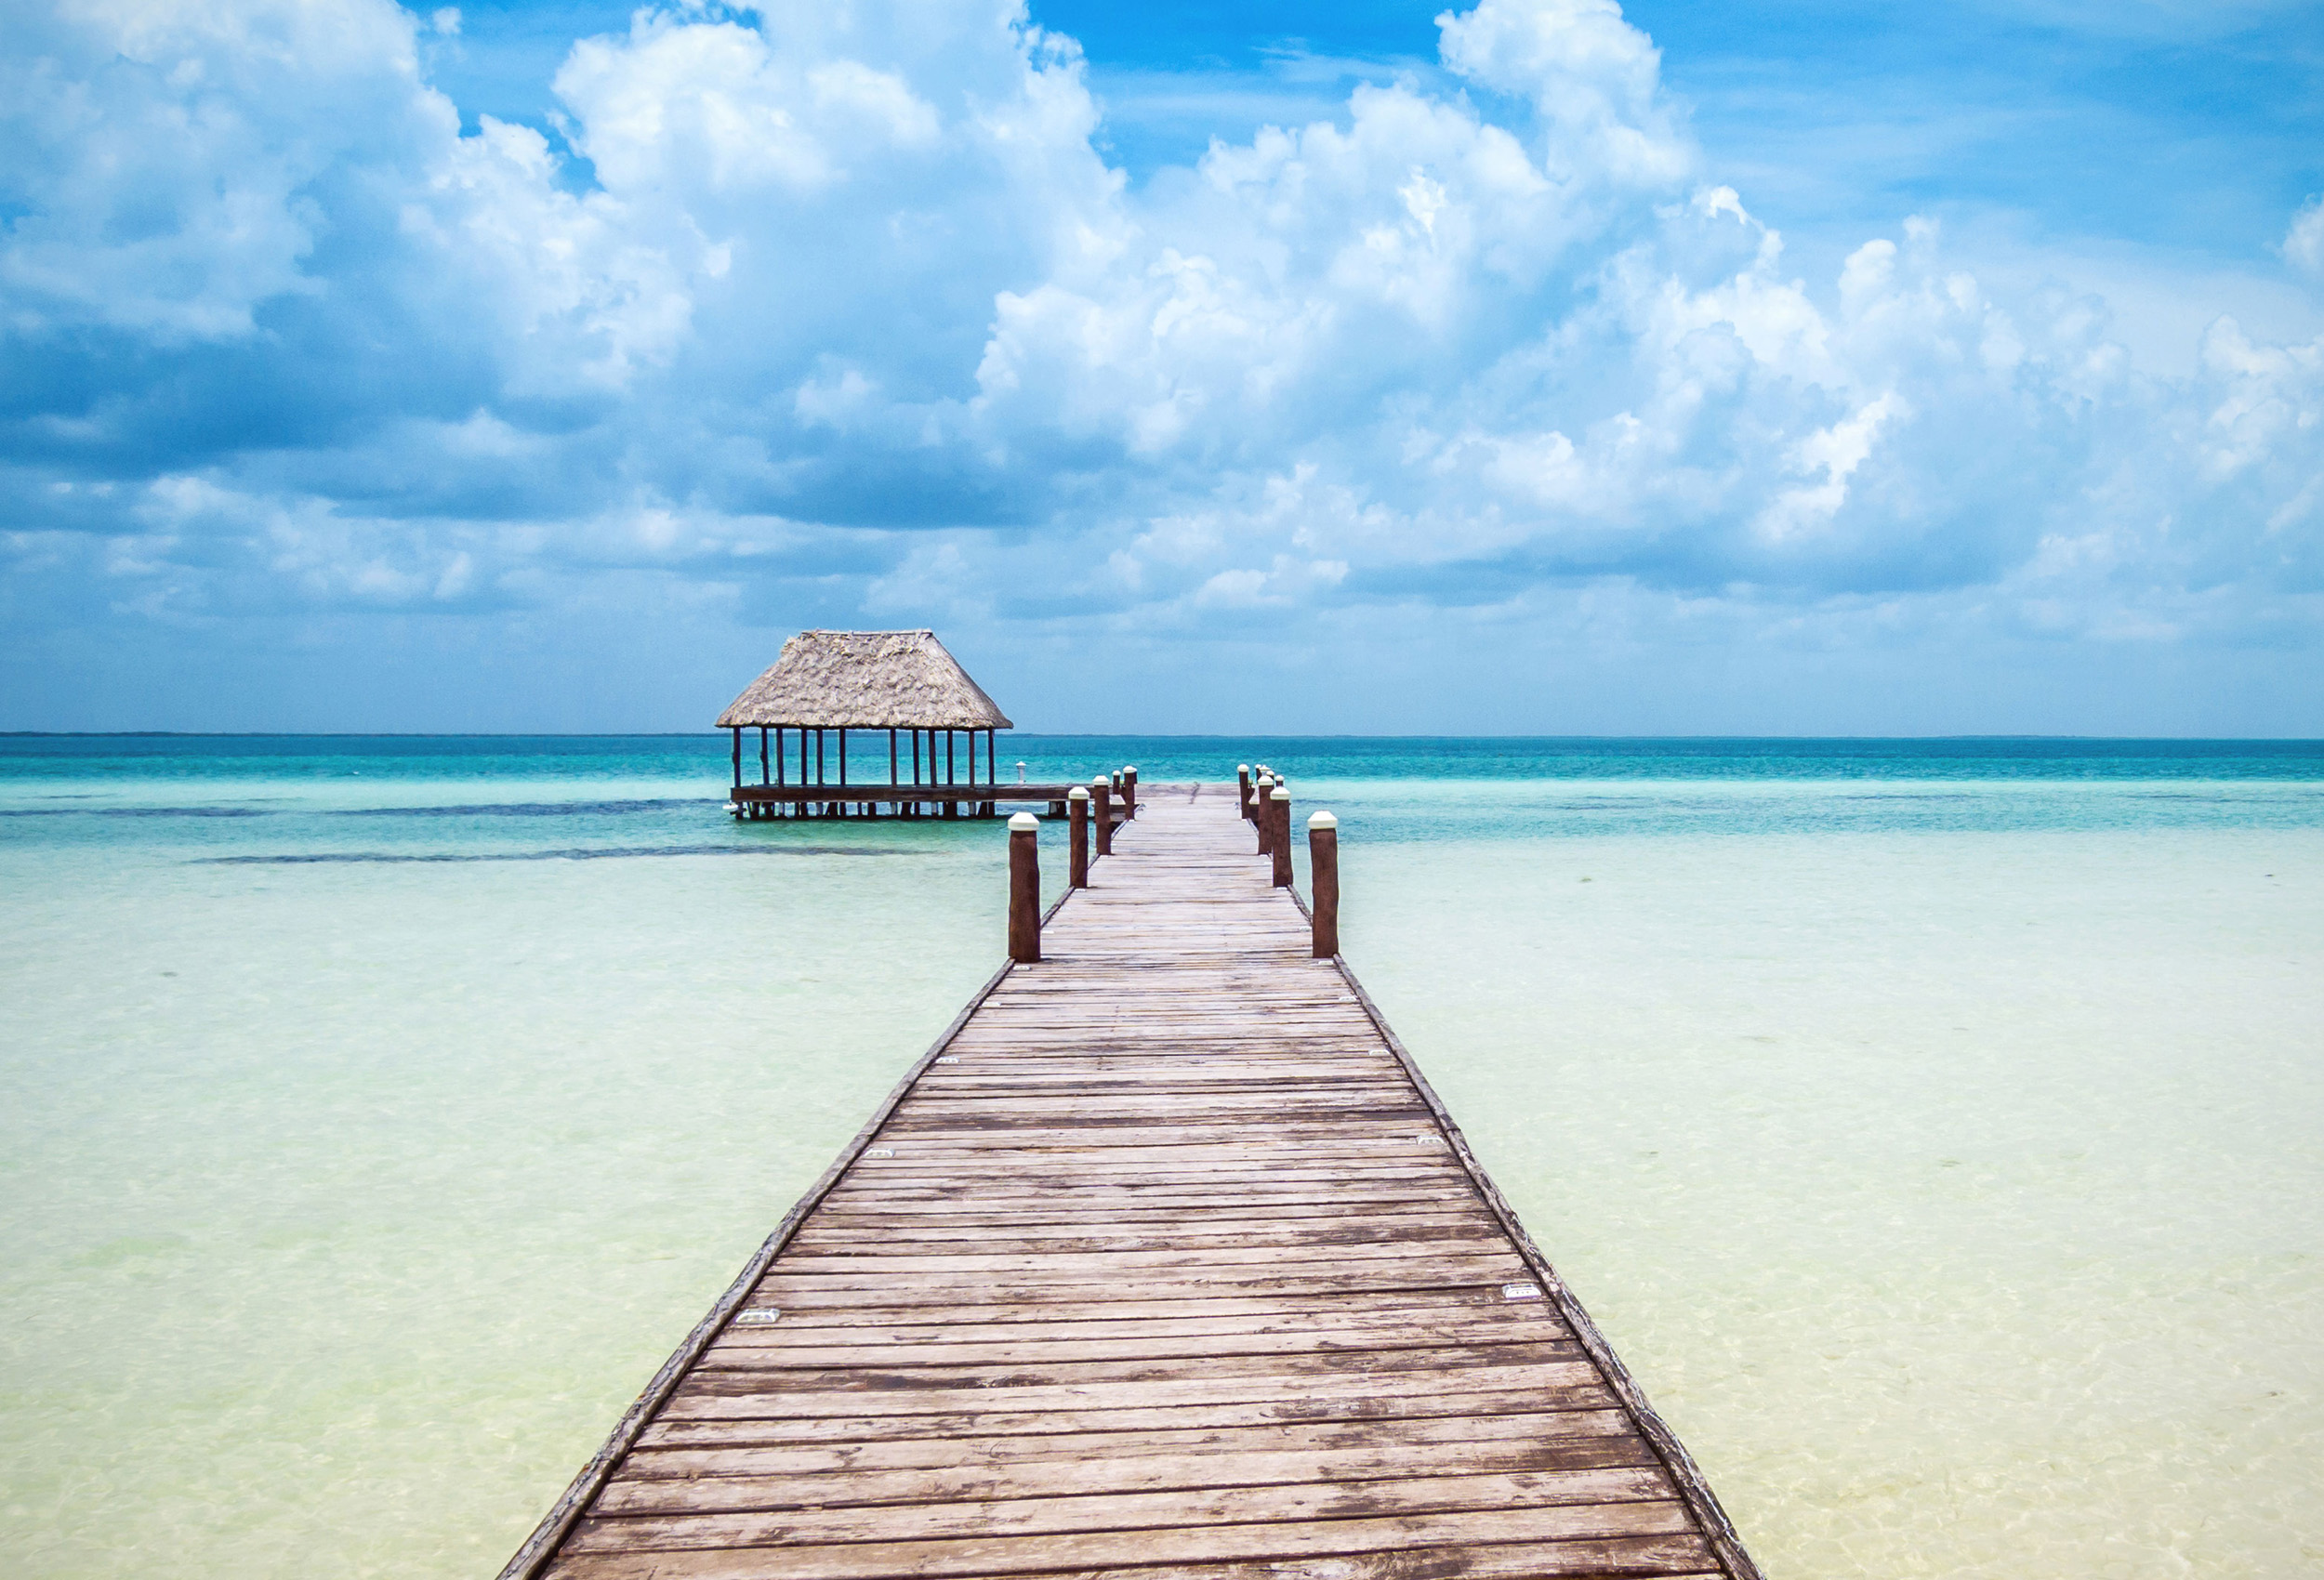 A long boardwalk pier extending into the blue sea at Holbox Island, Mexico.